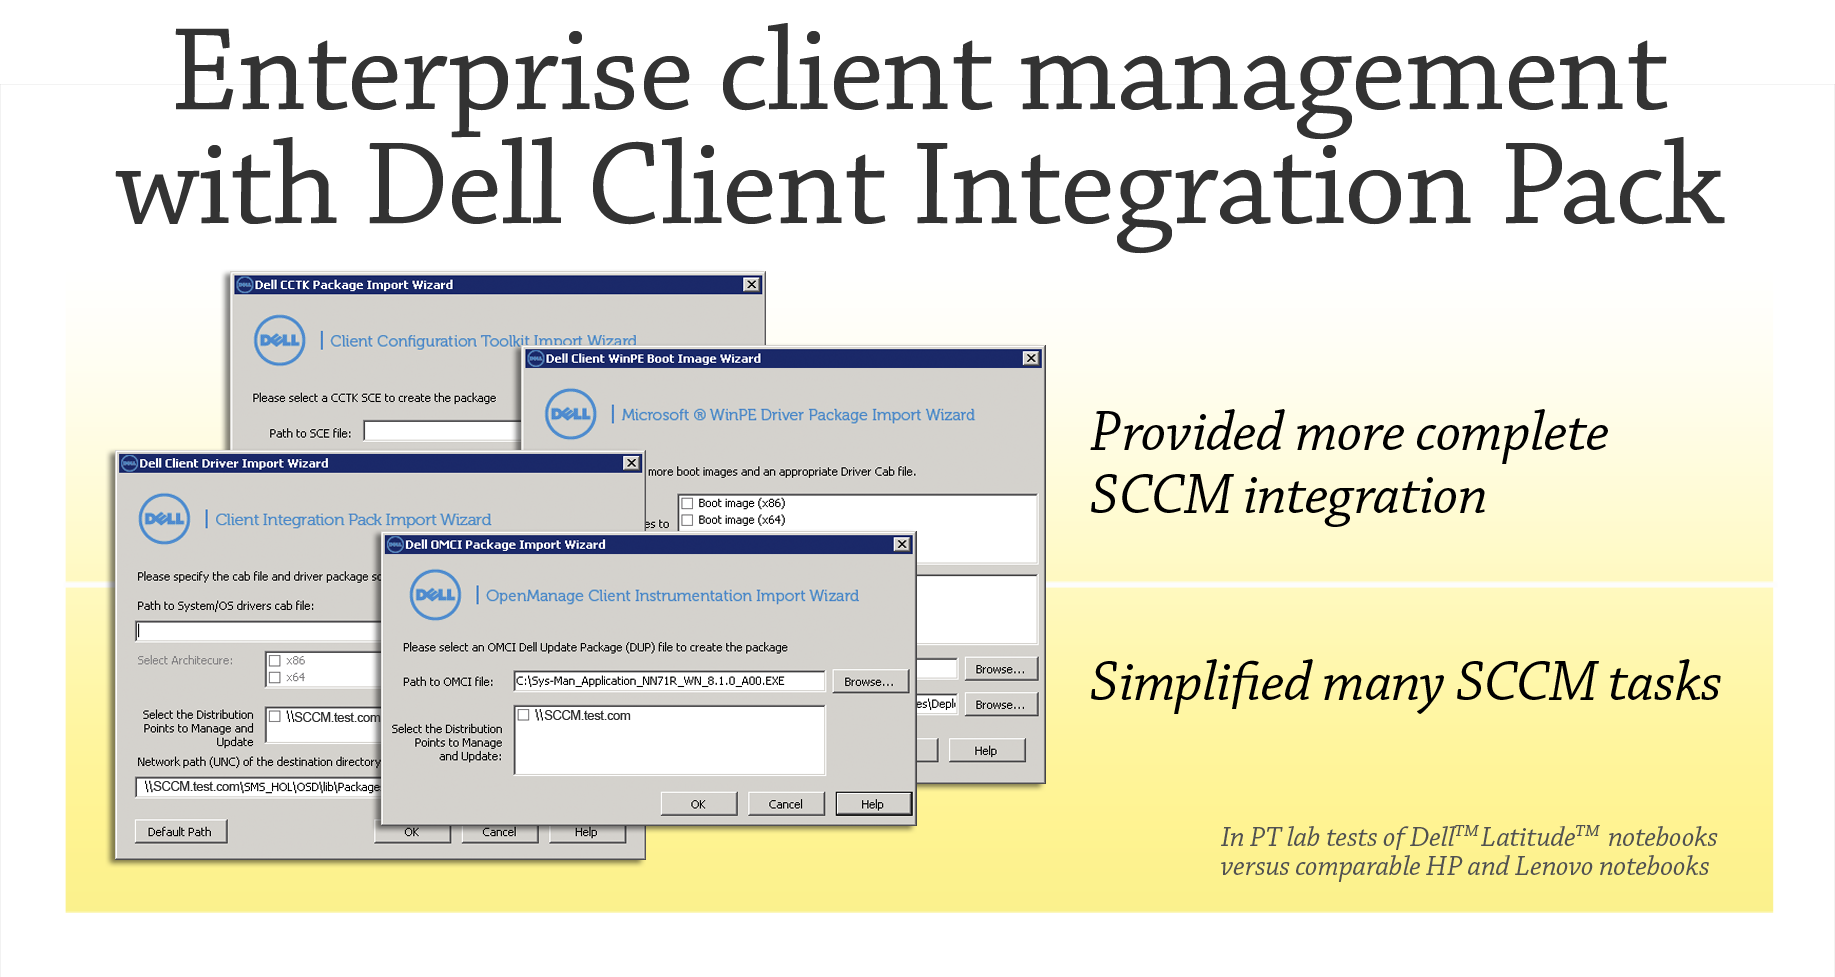 MANAGING CLIENTS WITH DELL CLIENT INTEGRATION PACK 3 0 AND MICROSOFT